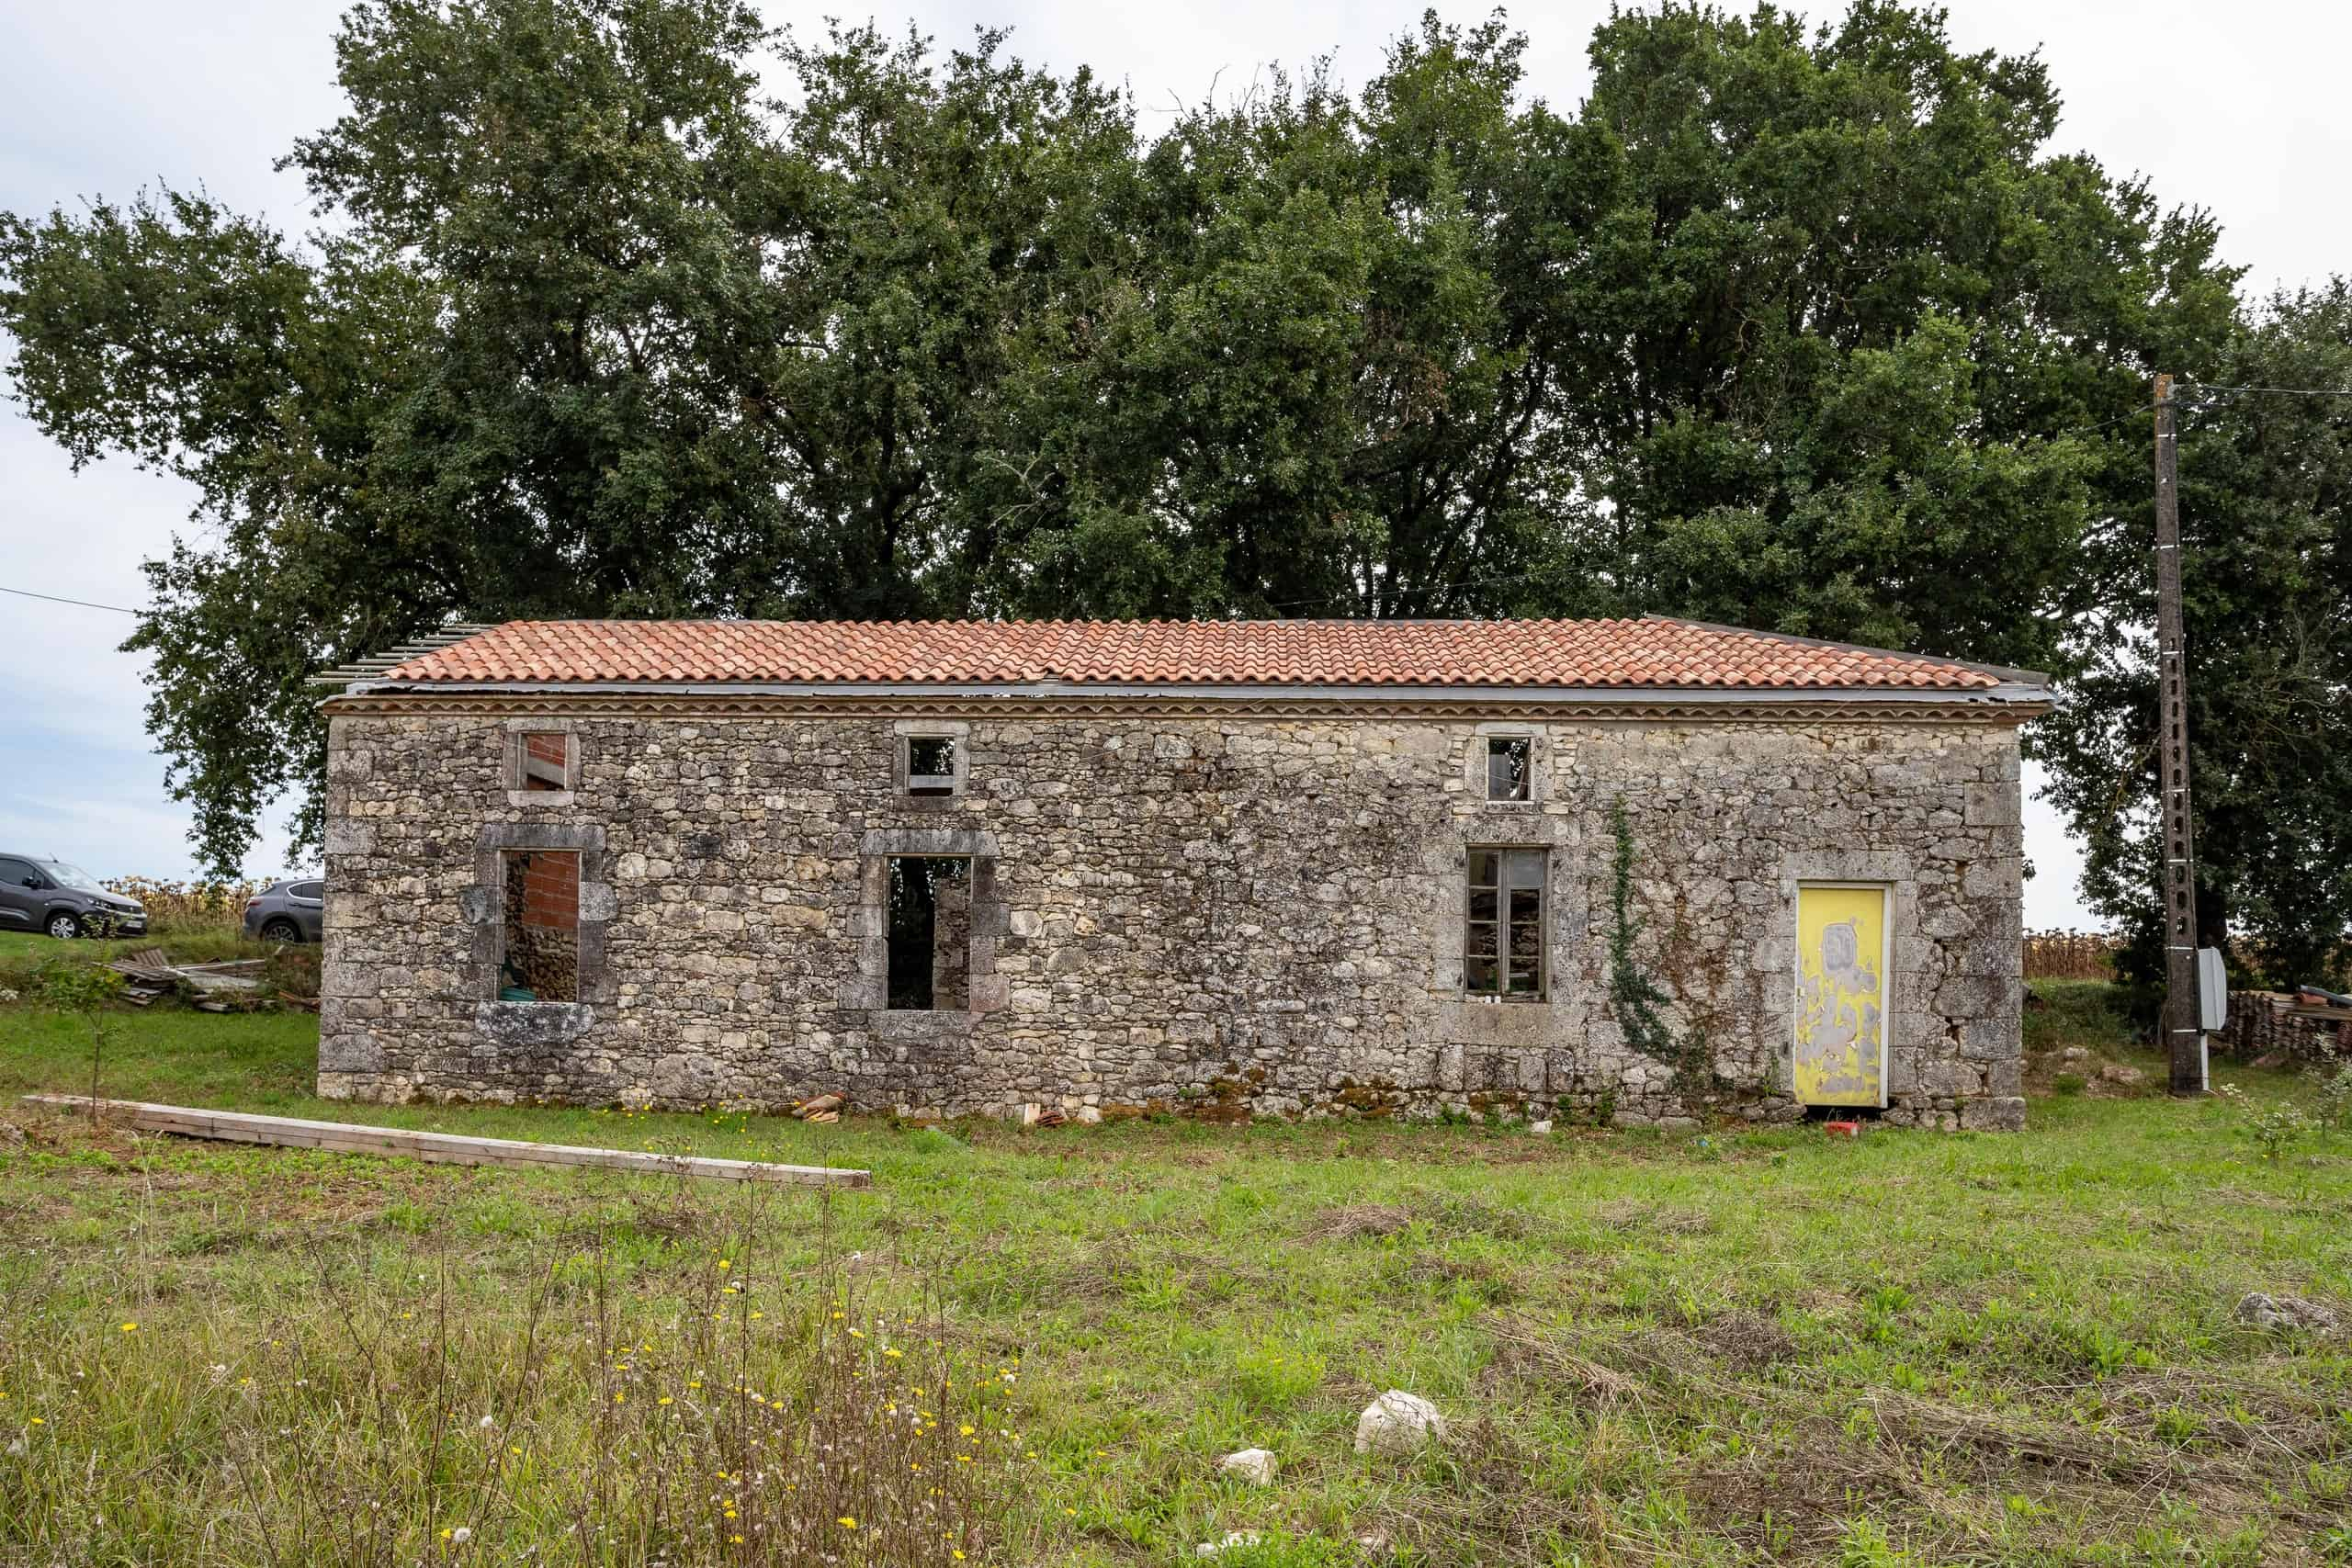 Renovation project in the country